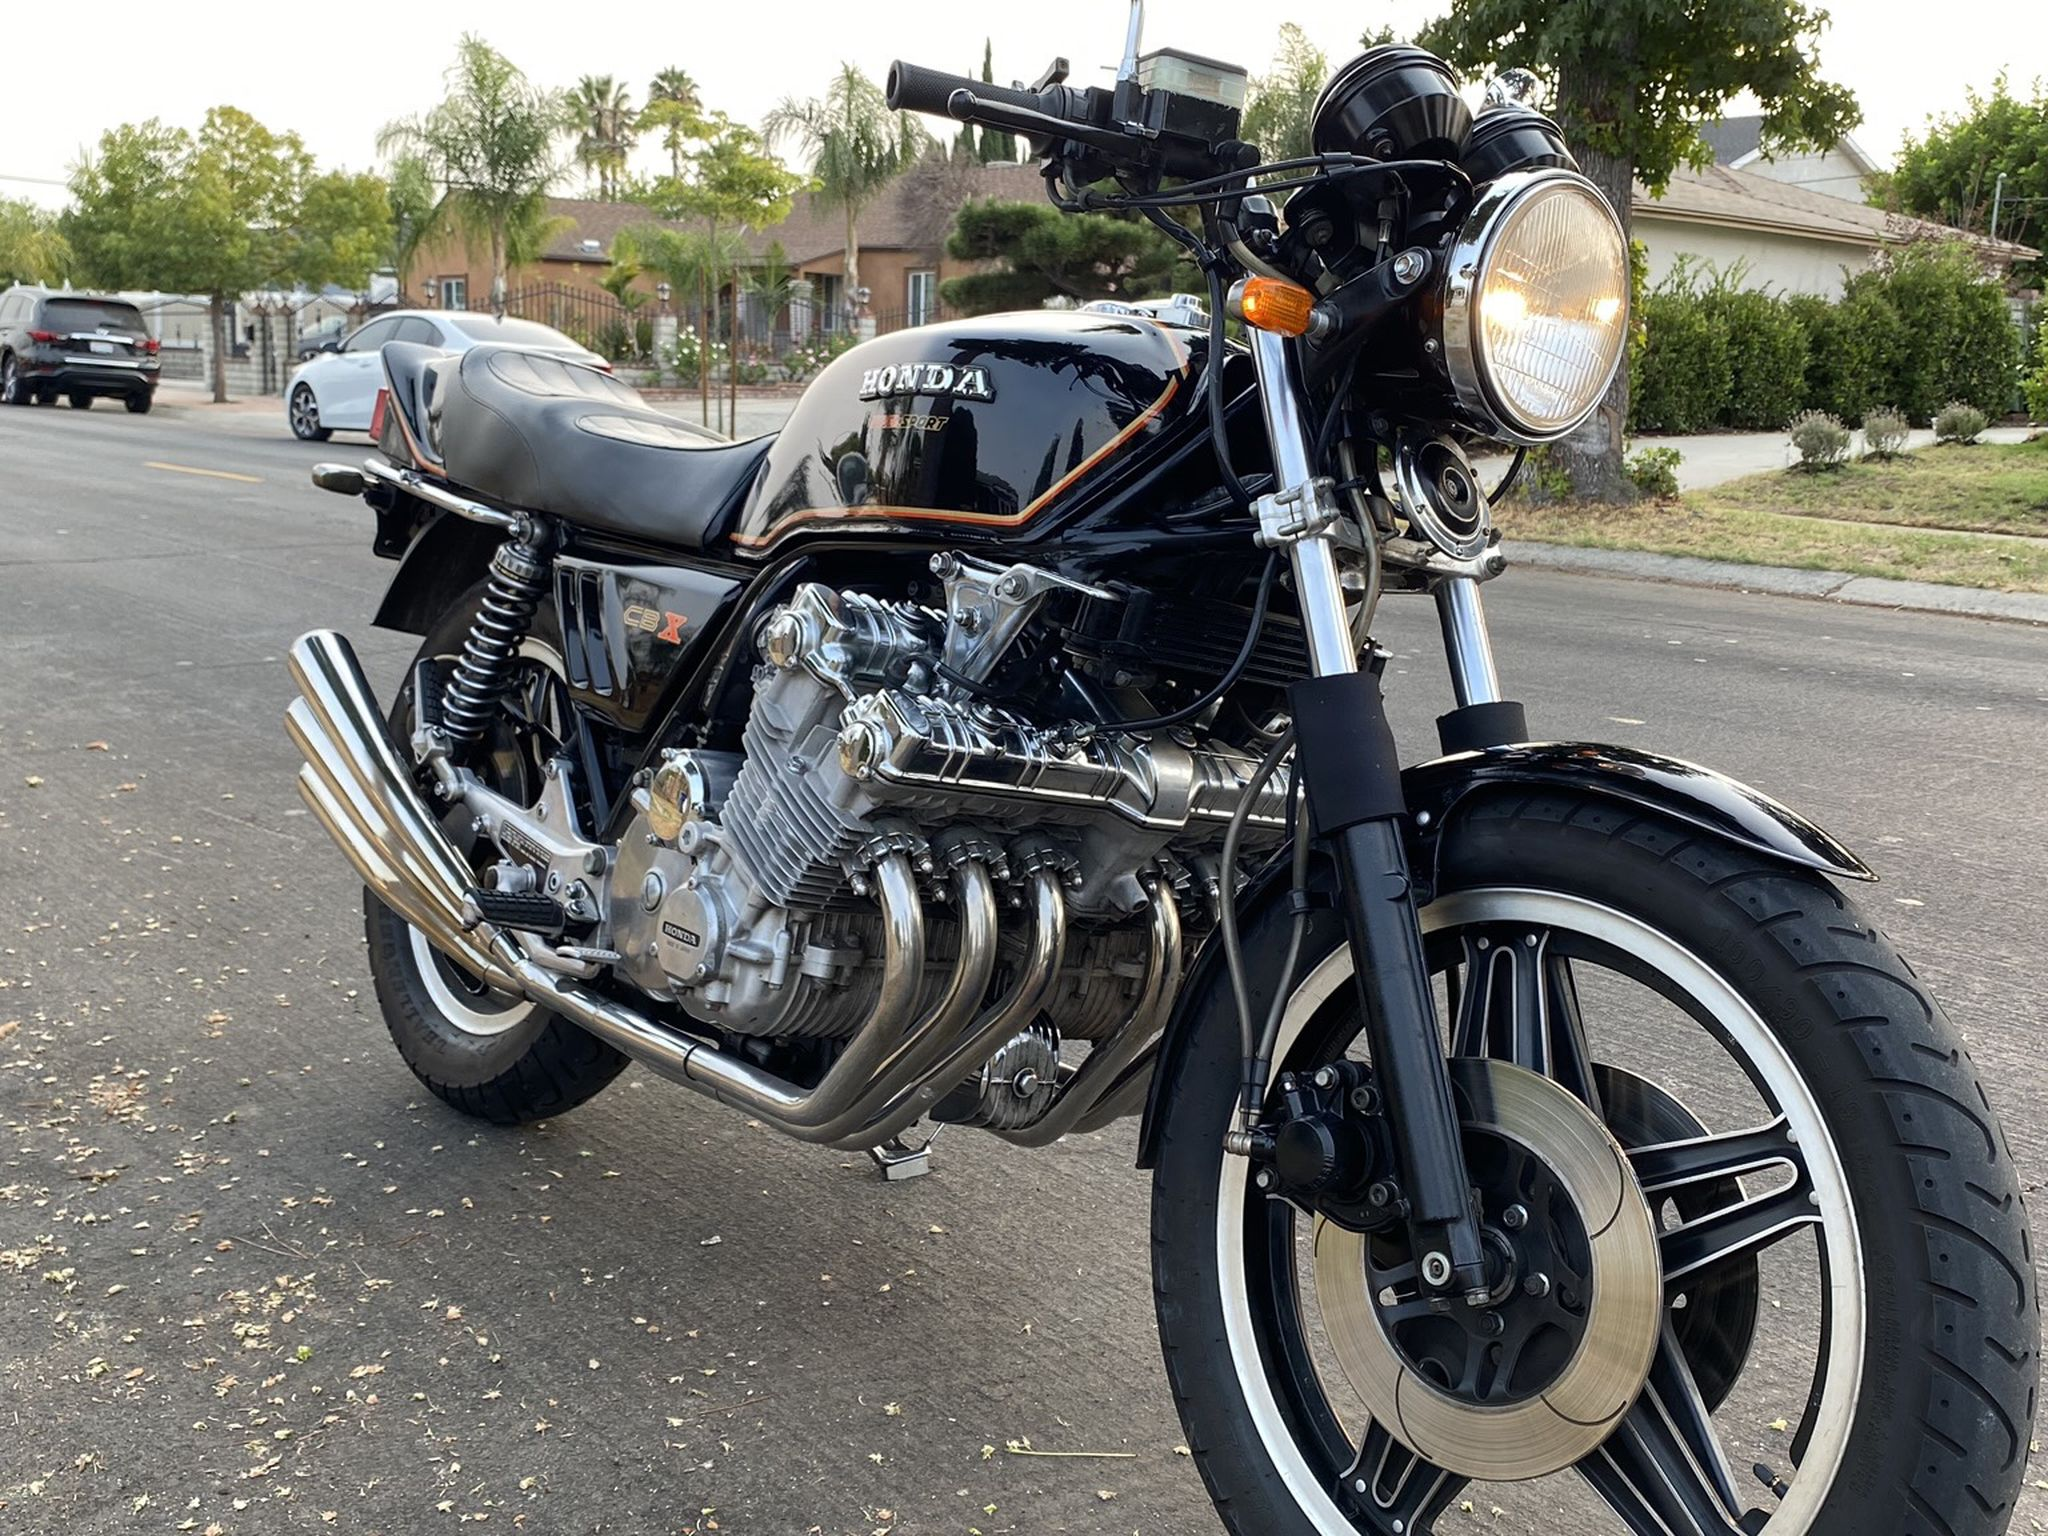 Photo 80 HONDA CBX 1000 LEGENDARY CLASSIC HIGHLY COLLECTIBLE! 6 CYLINDERS, 6 CARBS. 6 HEADERS, 6 PIPES. PERFECT. NEVER BEEN DOWN!